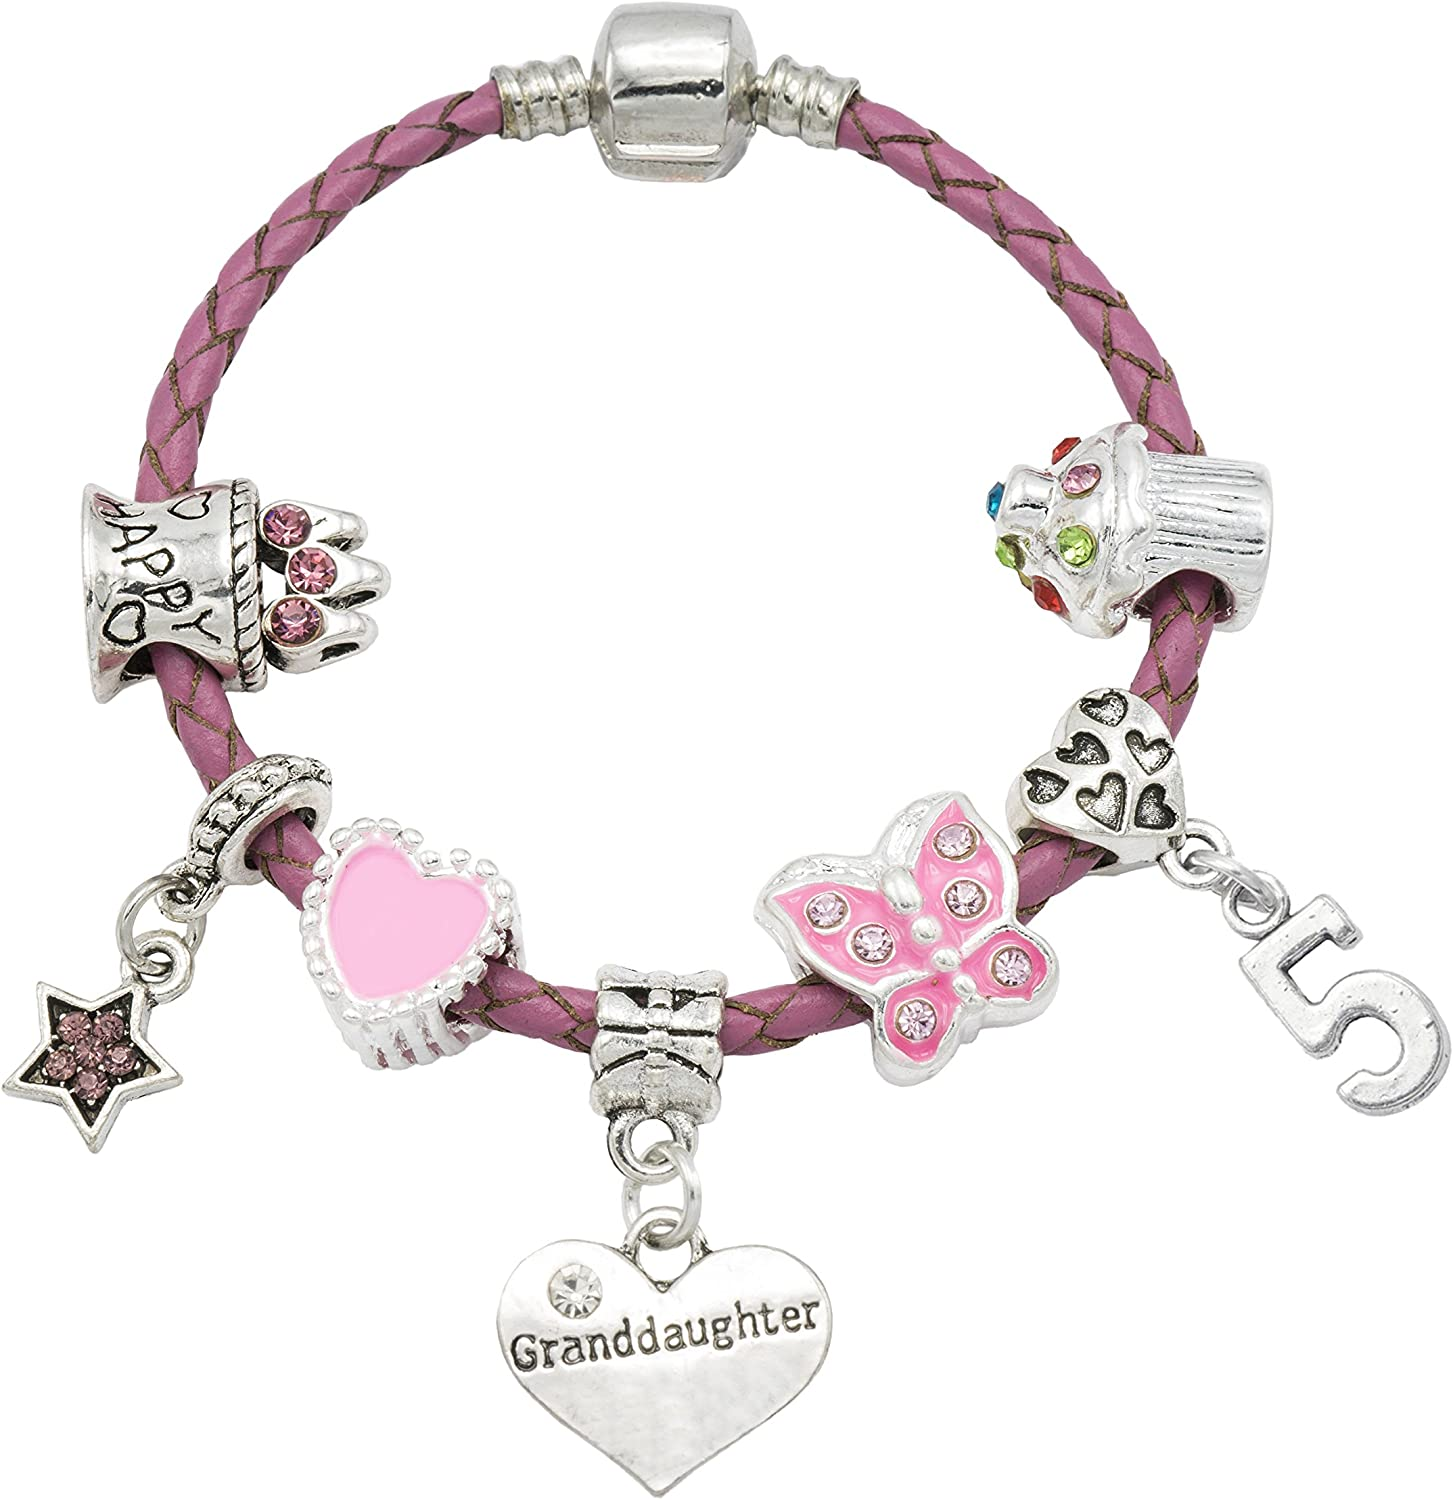 Girls Jewellery Granddaughter Happy 5th Birthday Bracelet for Girls with Gift Box